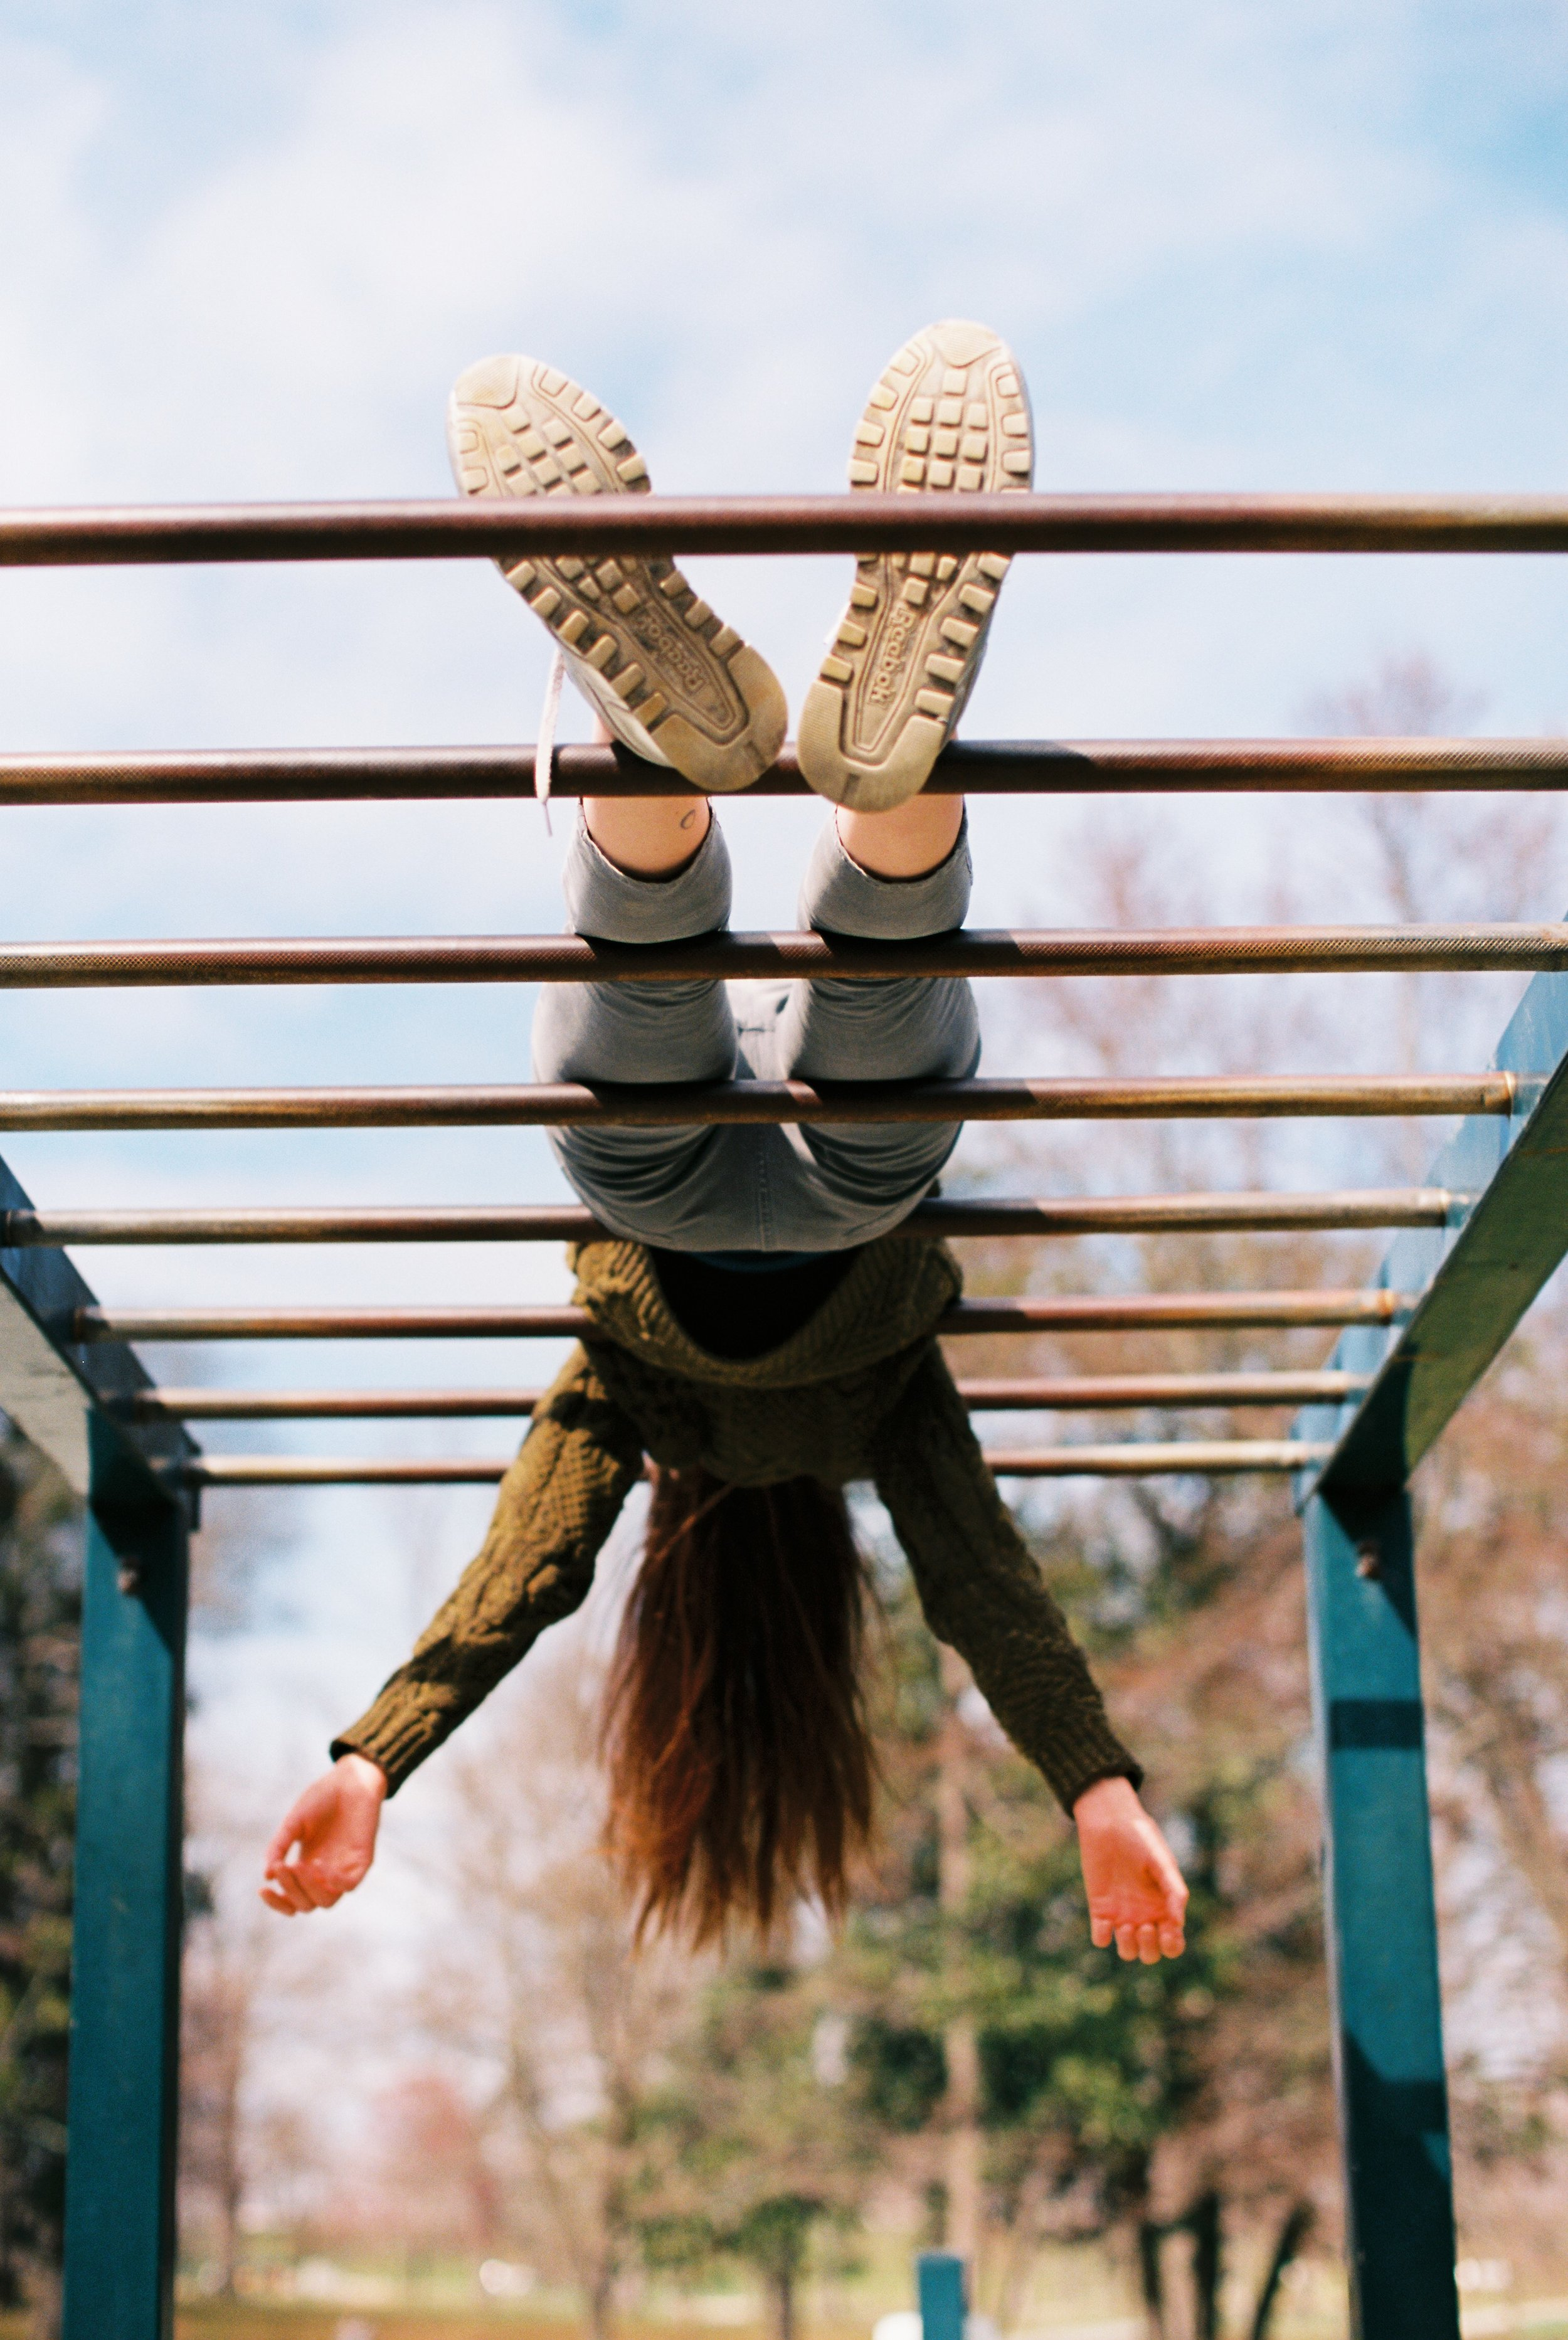 Hang Time - one roll of film and some monkey bars